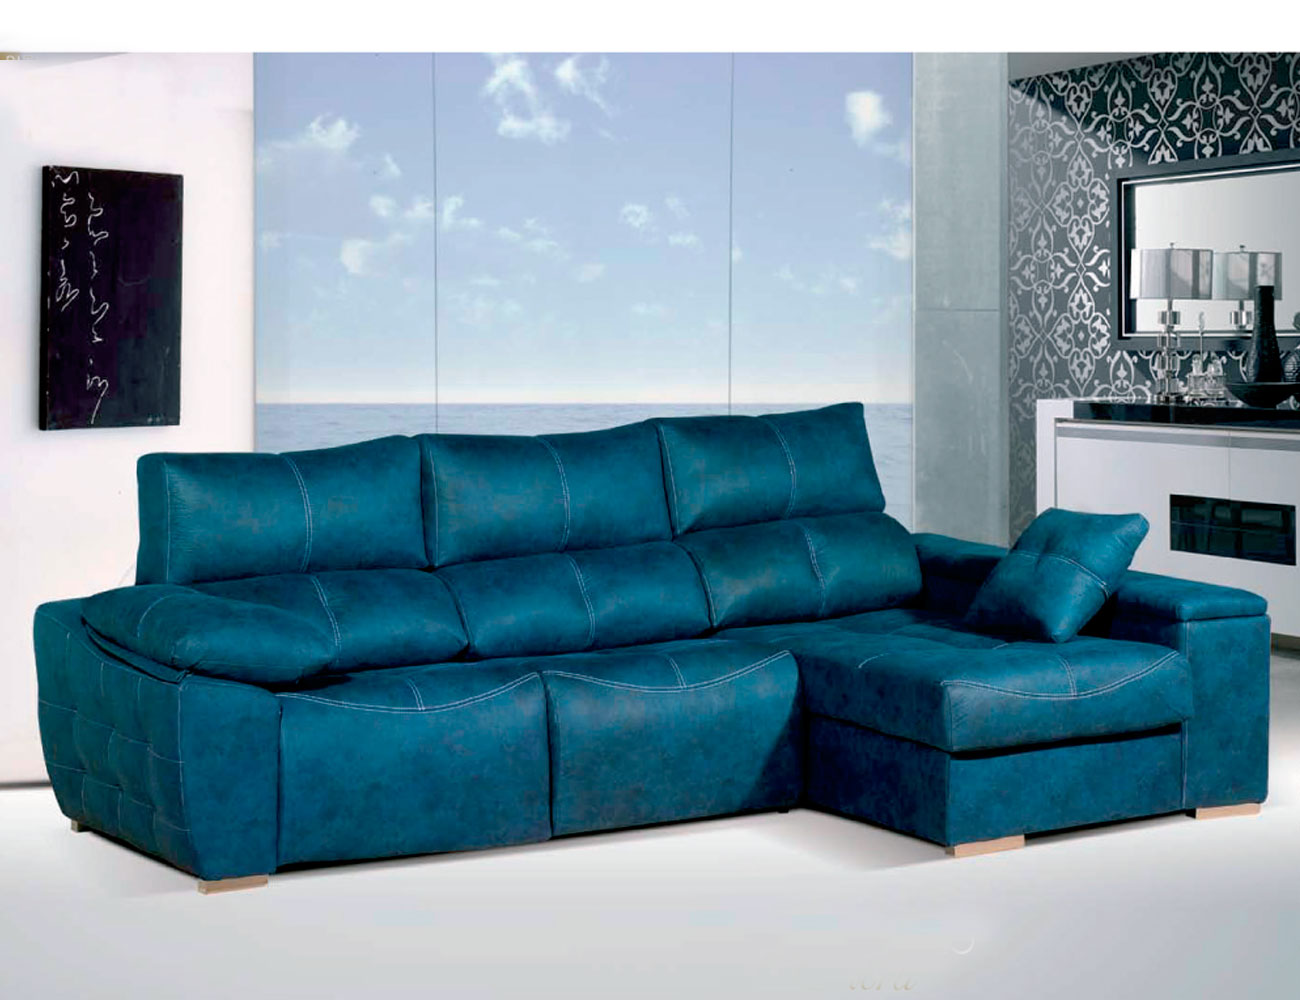 Sofa chaiselongue relax 2 motores anti manchas turquesa5